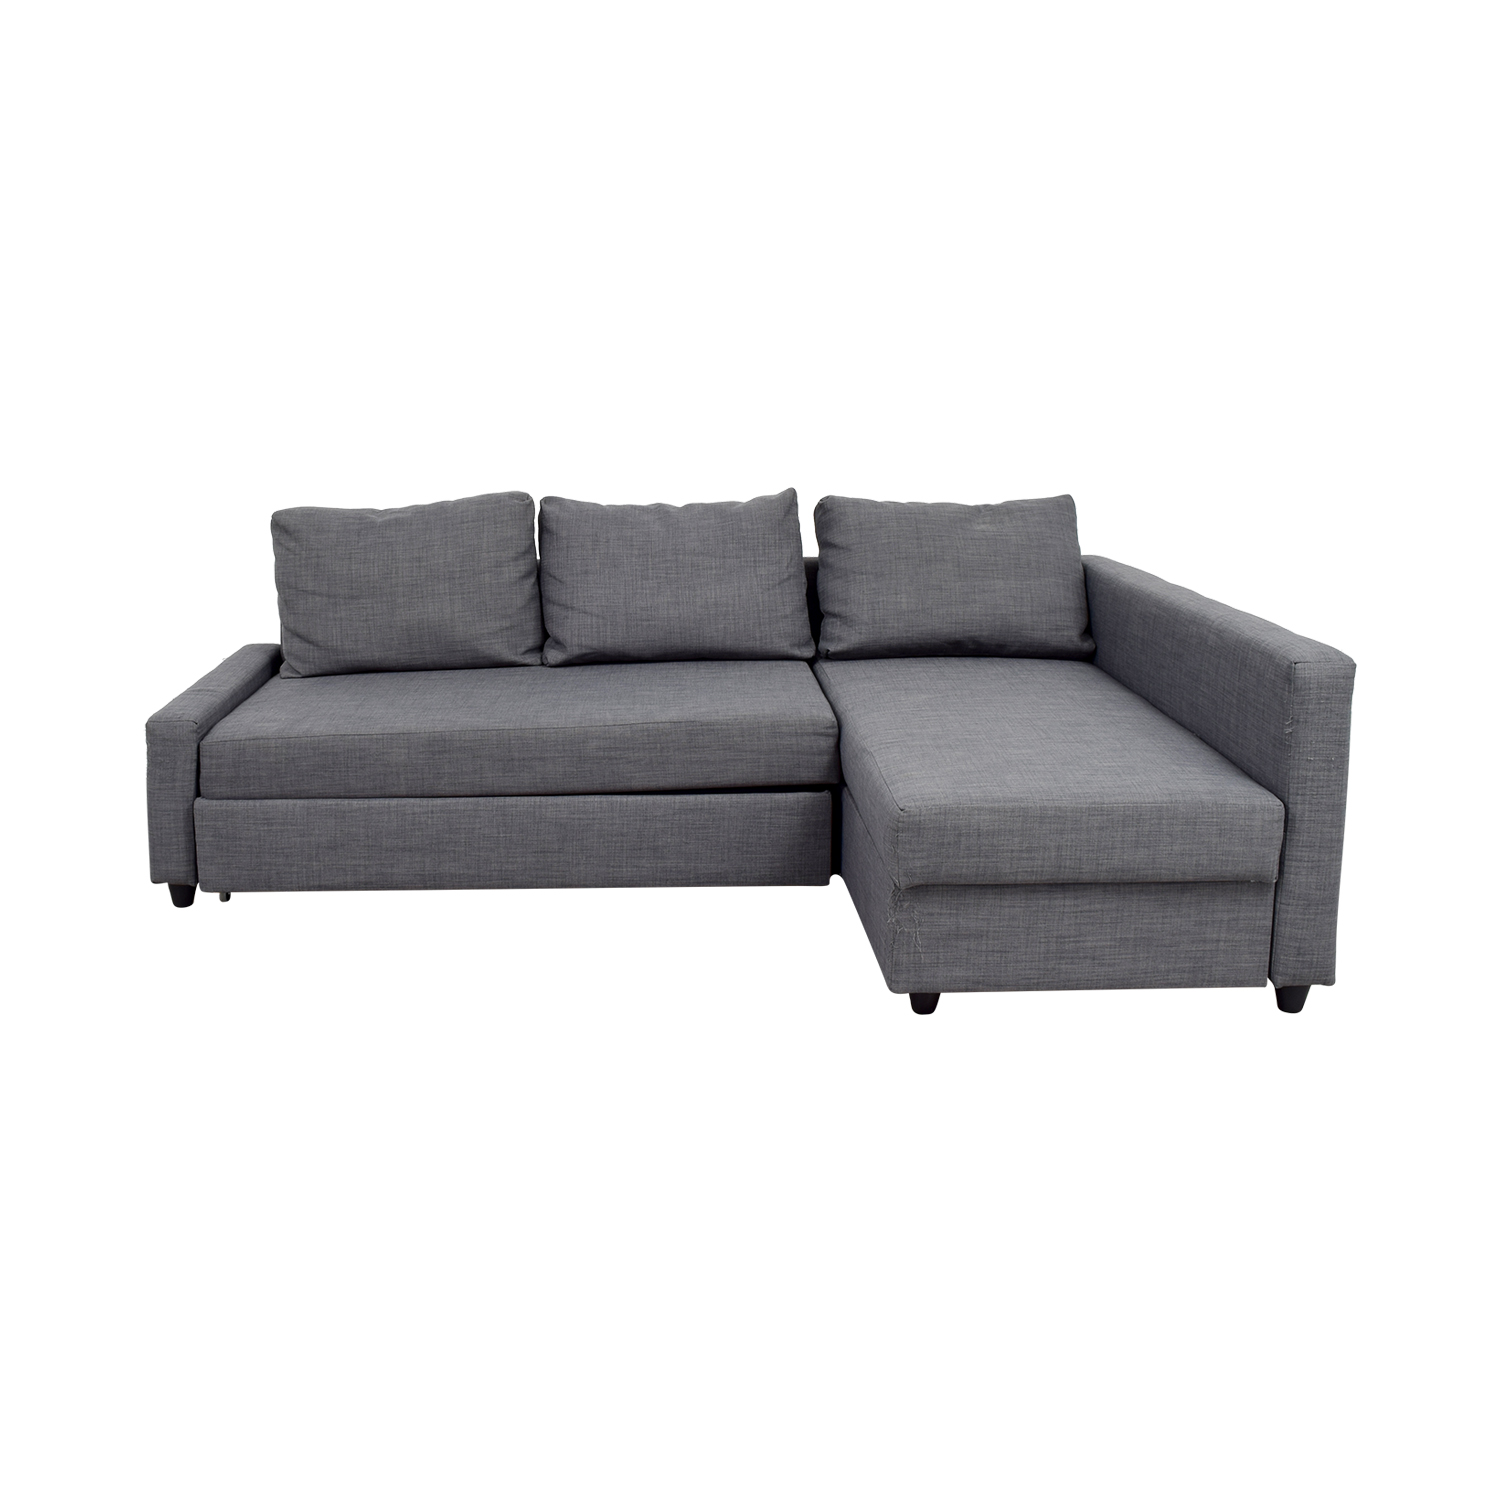 akali modern l tufted and of sofa on small pull ottoman furniture faux sofas sleeper with couch chaise out shaped in living leather pit interesting dark large sectional western lounge size